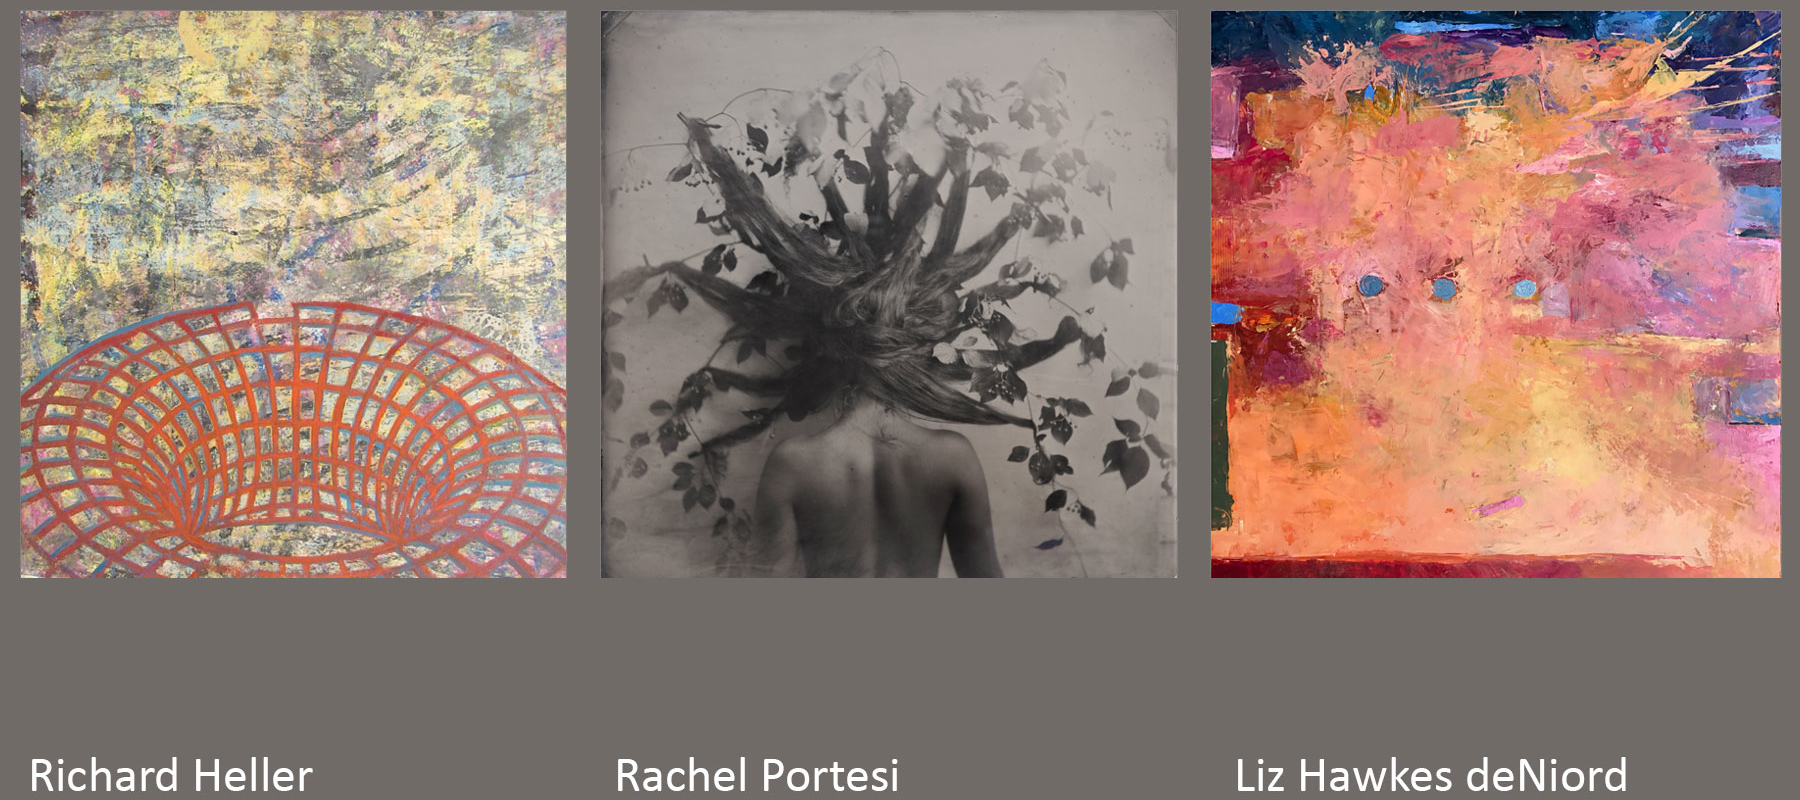 Richard Heller, Rachel Portesi, Liz Hawkes deNiord